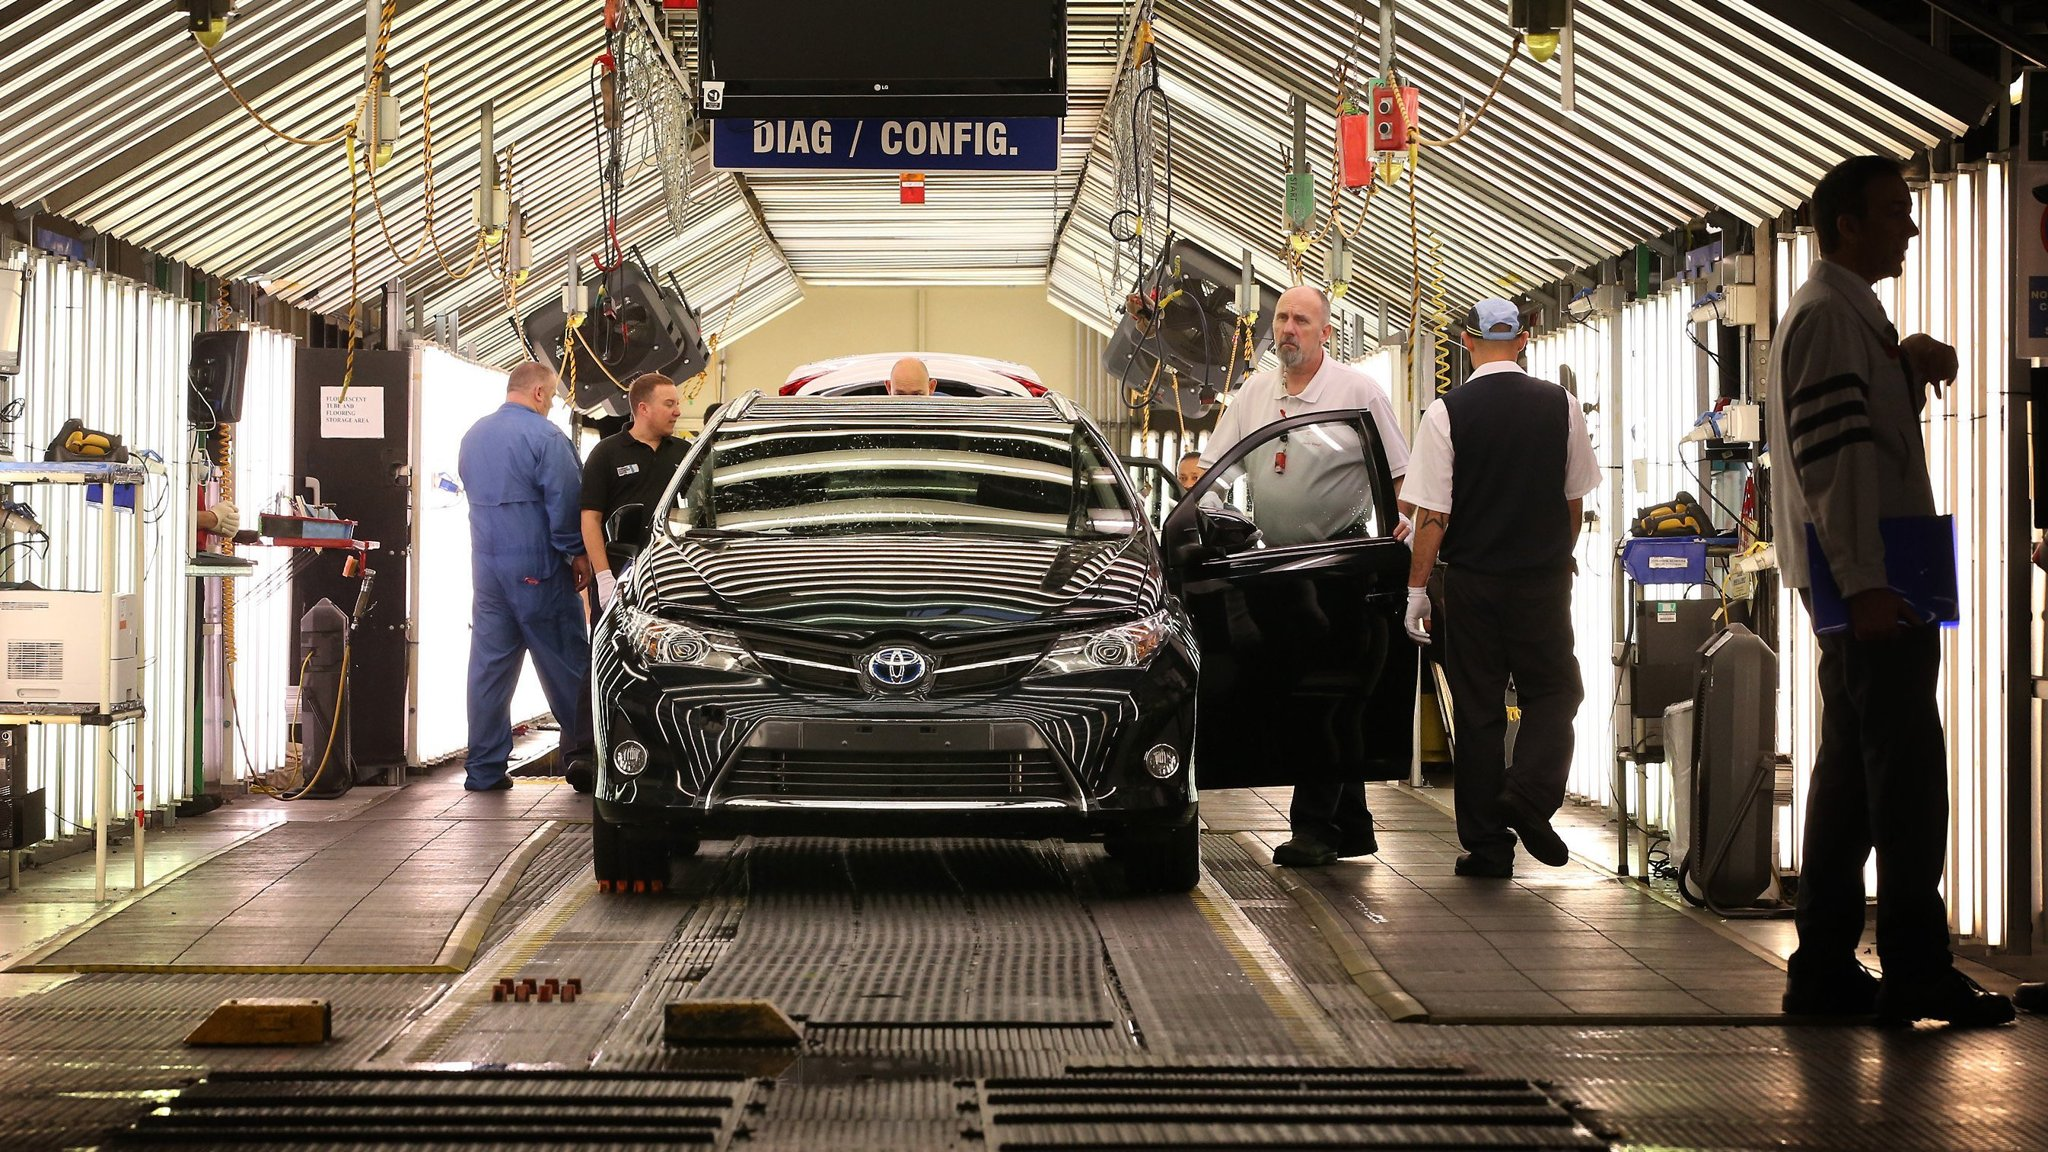 Toyota, HSBC and UBS warn of Brexit damage | Financial Times